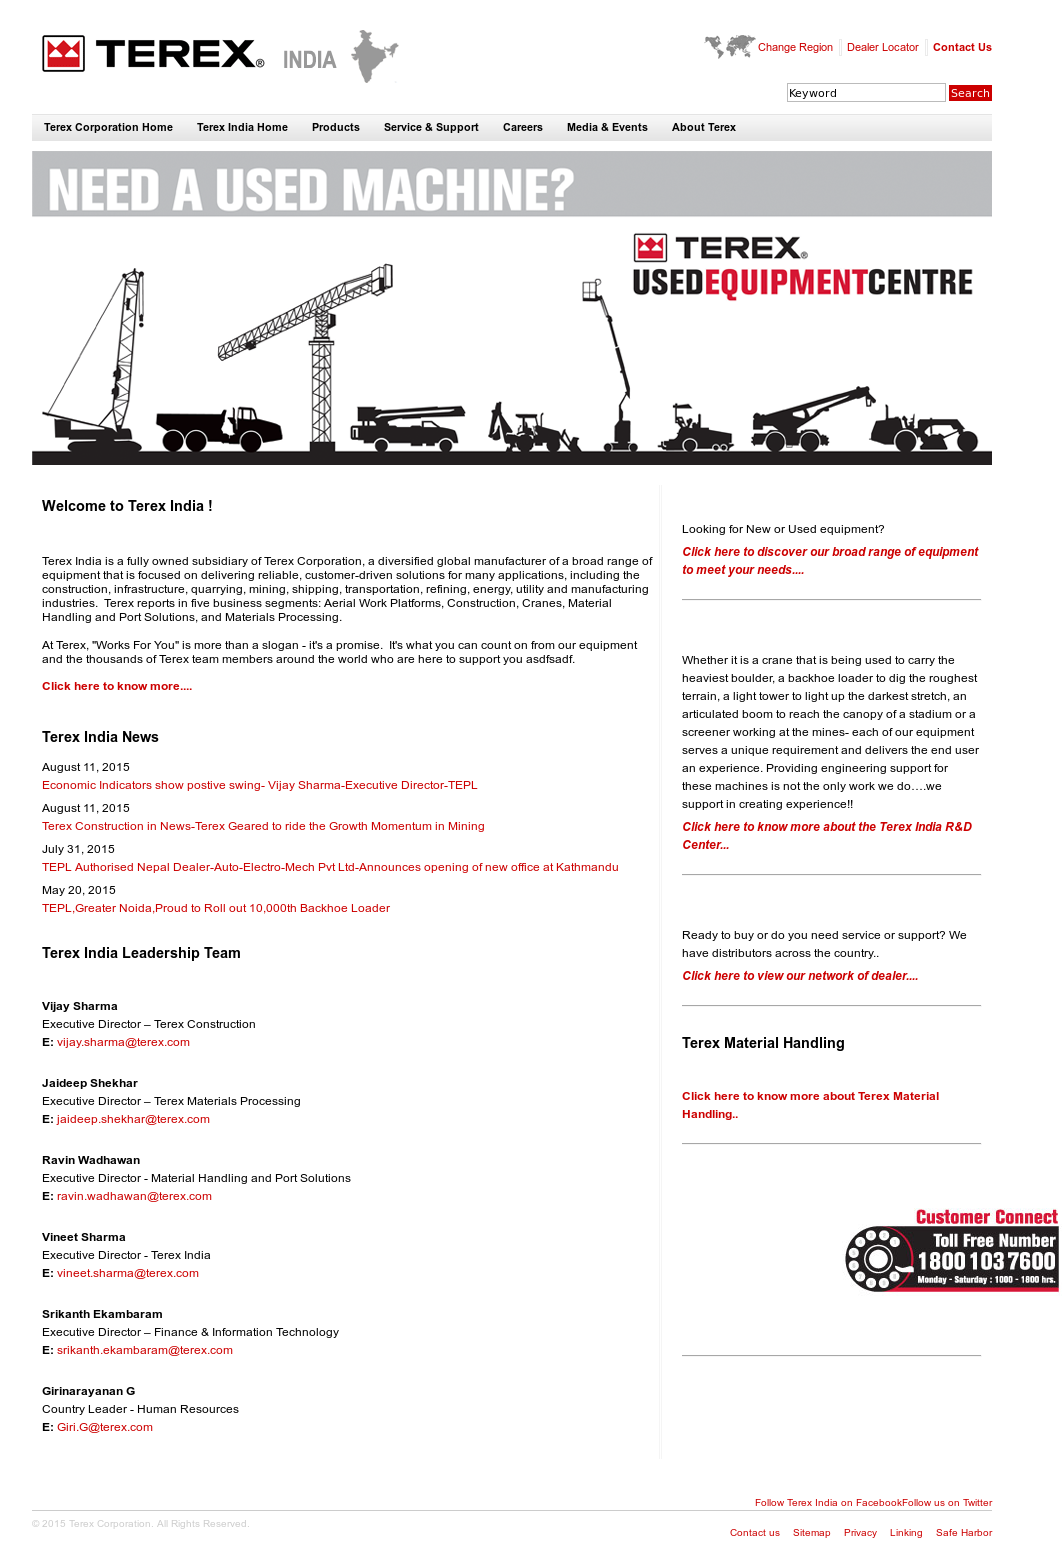 Terex Competitors, Revenue and Employees - Owler Company Profile